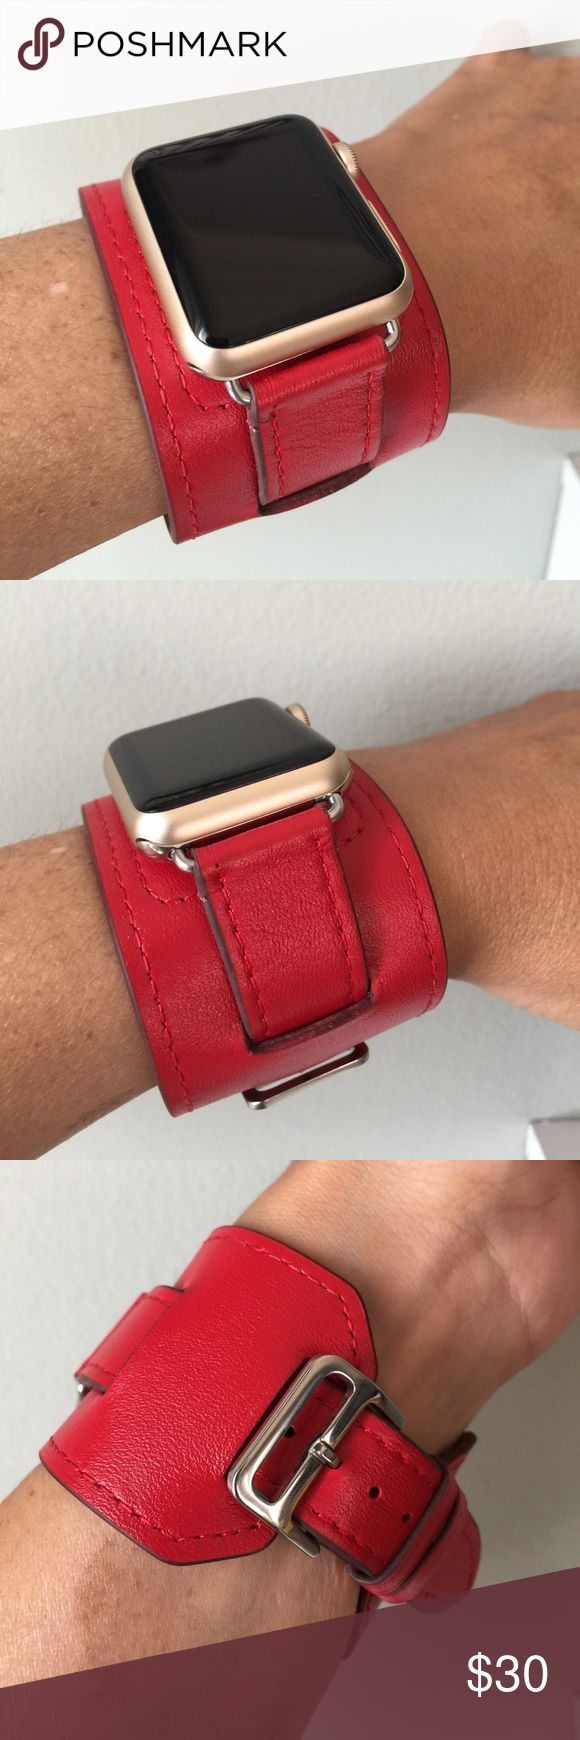 ⚪️Red Apple Watch Leather Cuff SILVER HW⚪️ Apple Watch cuff band, genuine high quality leather, SILVER hardware.  It comes with 38mm or 42mm adapters. Please select your size when you purchase. The adapters also fit the Apple Watch I, 2 and Sport.   I have other band colors, hardware colors and styles in my closet. Check them out!   I offer 15% off if you buy two or more! Please add BOTH items to the bundle for the discount to automatically apply.    Only the band is for sale; it does not…